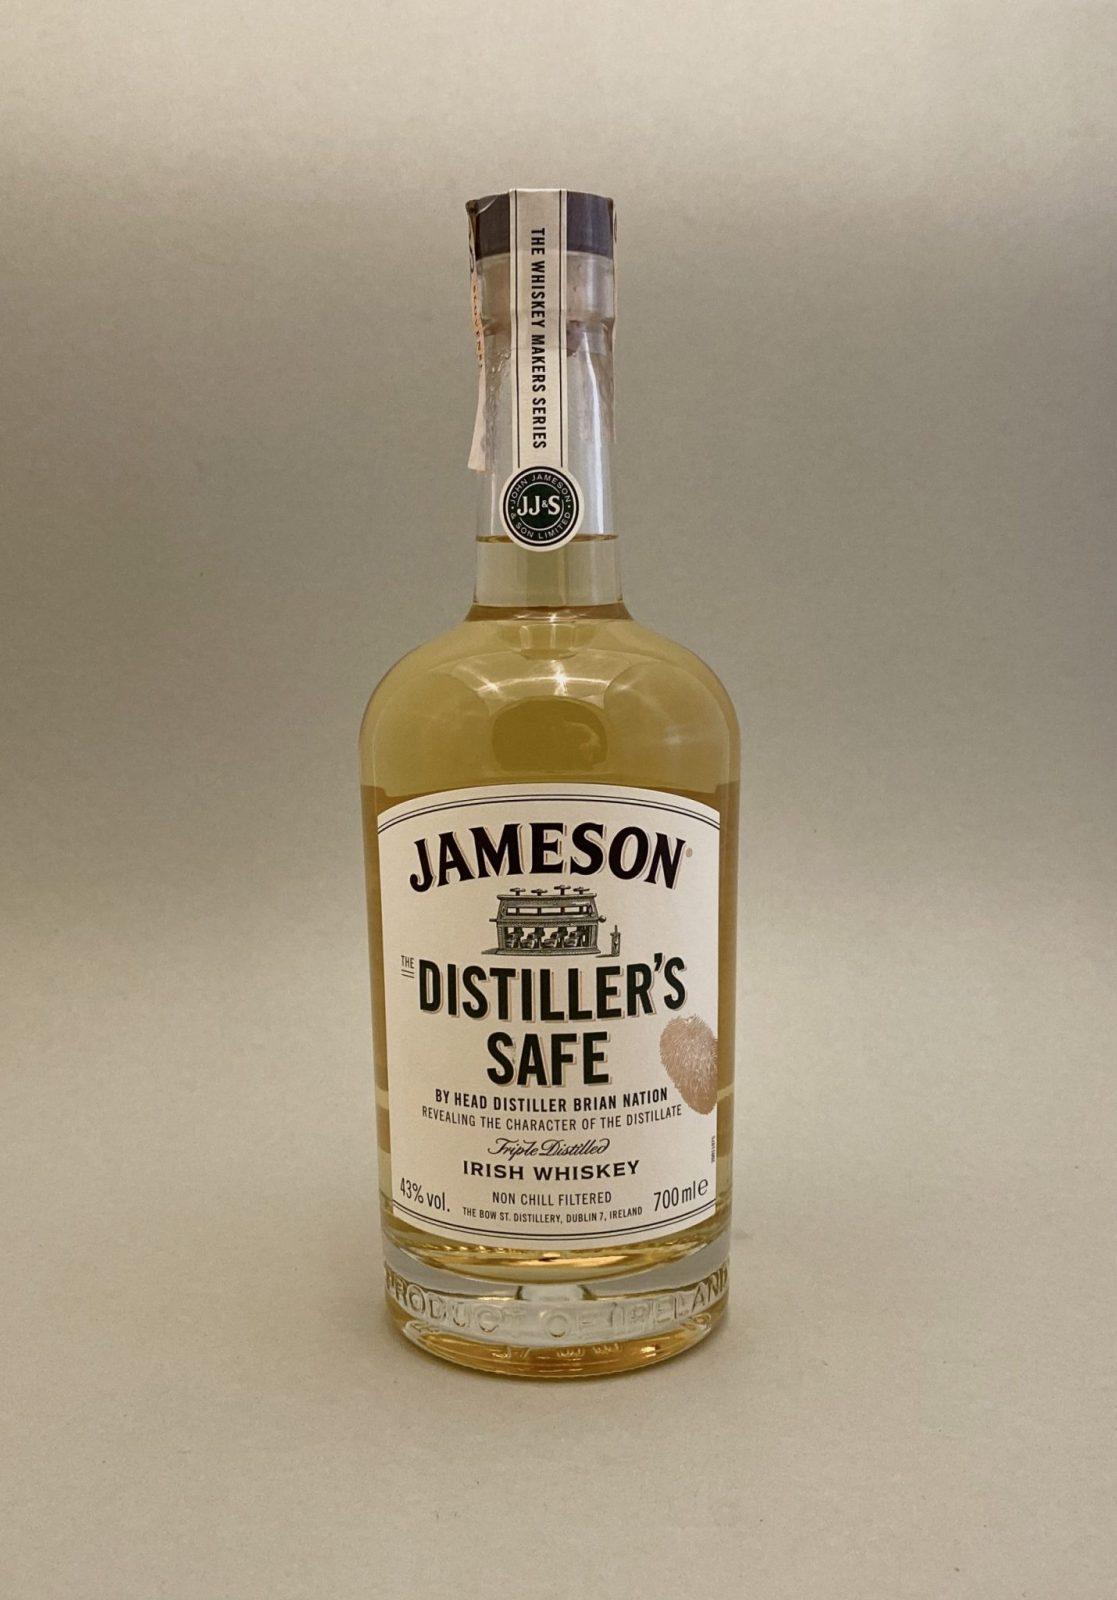 Jameson Makers Distillers Safe 43%, Bottleshop Sunny wines slnecnice mesto, petrzalka, Írska Whiskey, rozvoz alkoholu, eshop